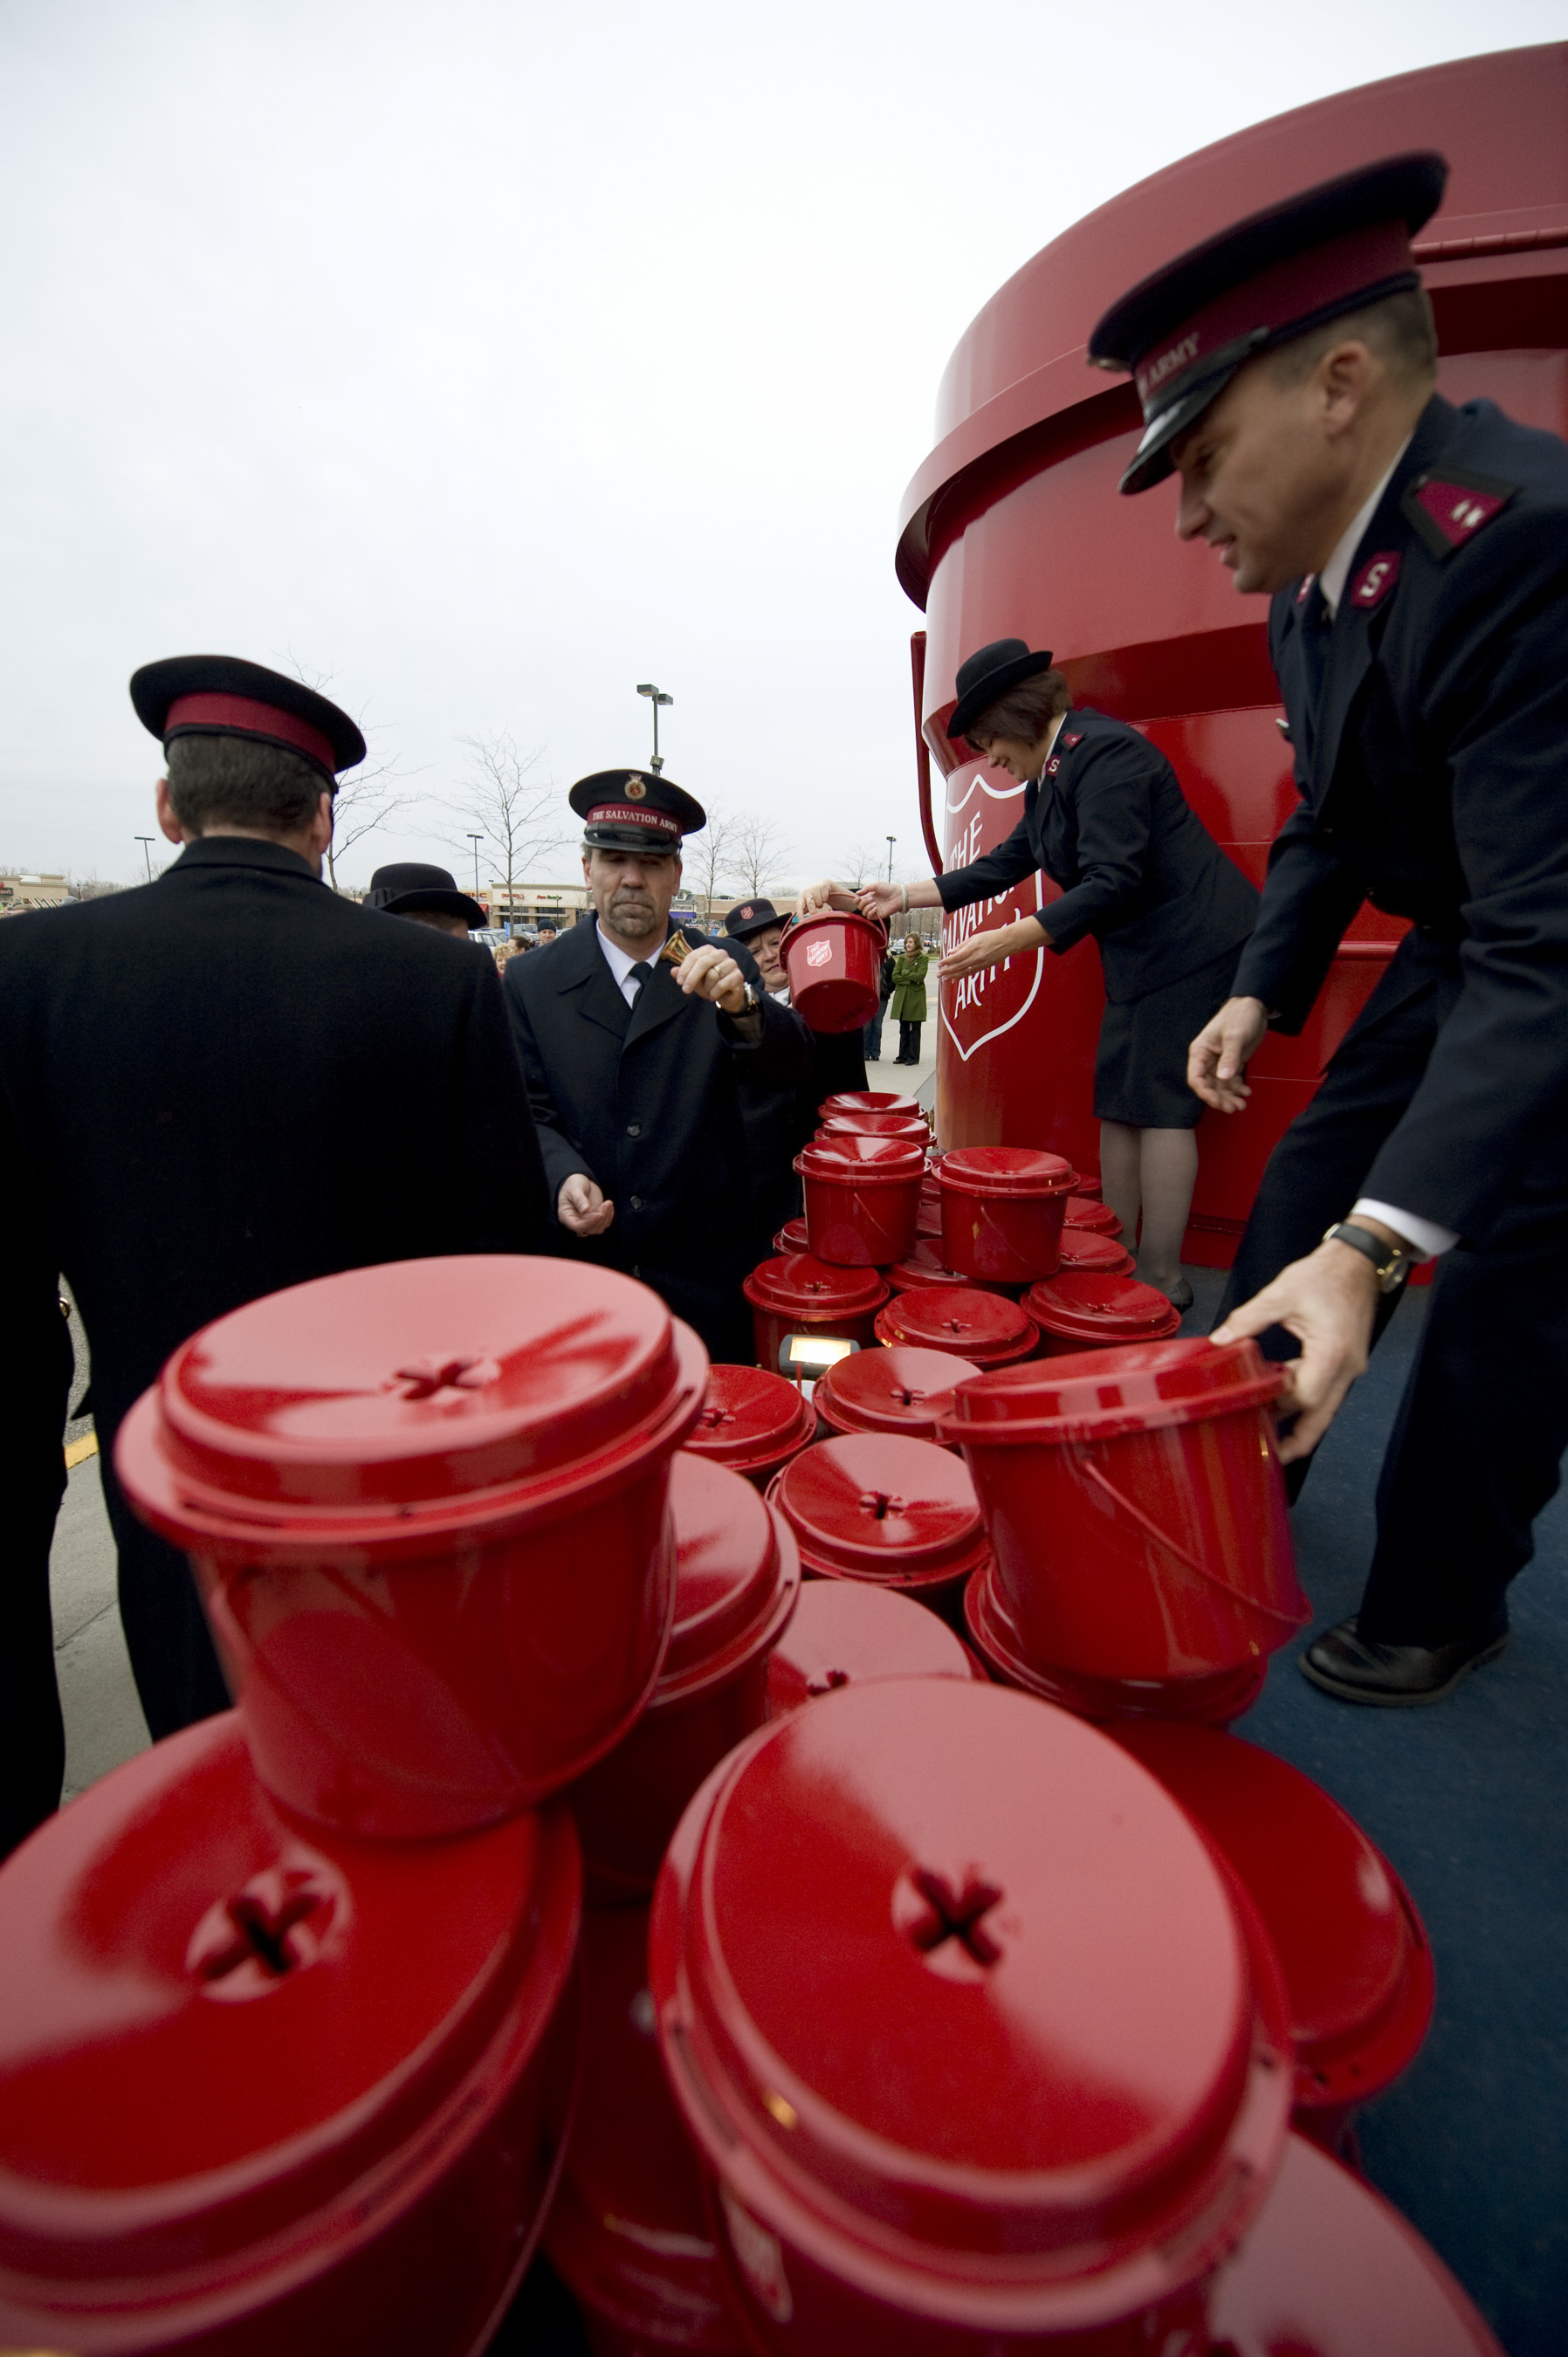 DAVID BREWSTER • dbrewster@startribune.com Thursday_11/12/09_St.Anthony ] The Salvation Army handed out the red kettles and hand bells at a kick-off ceremony for its annual holiday fund raiser.